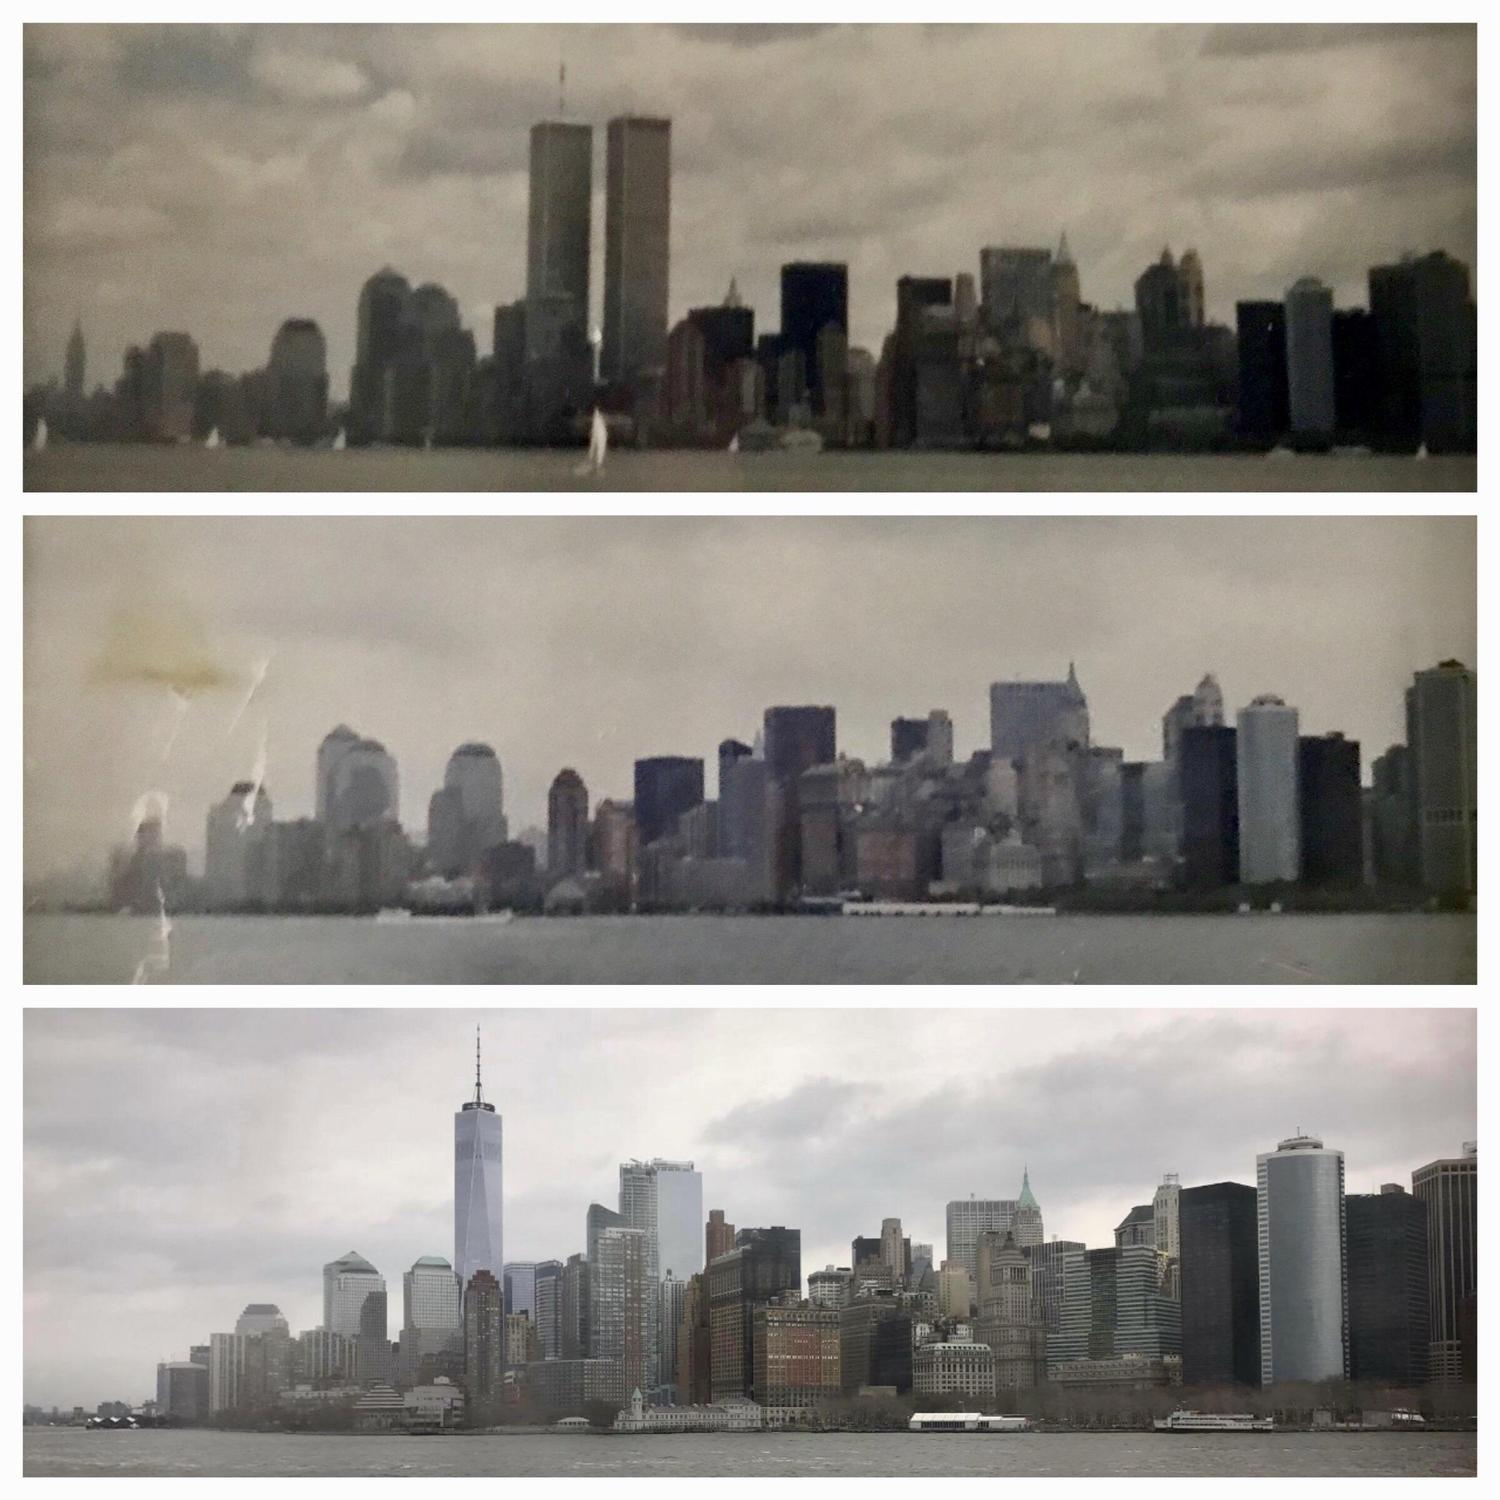 NYC from Staten Island Ferry - 1997 - 2002 - 2018